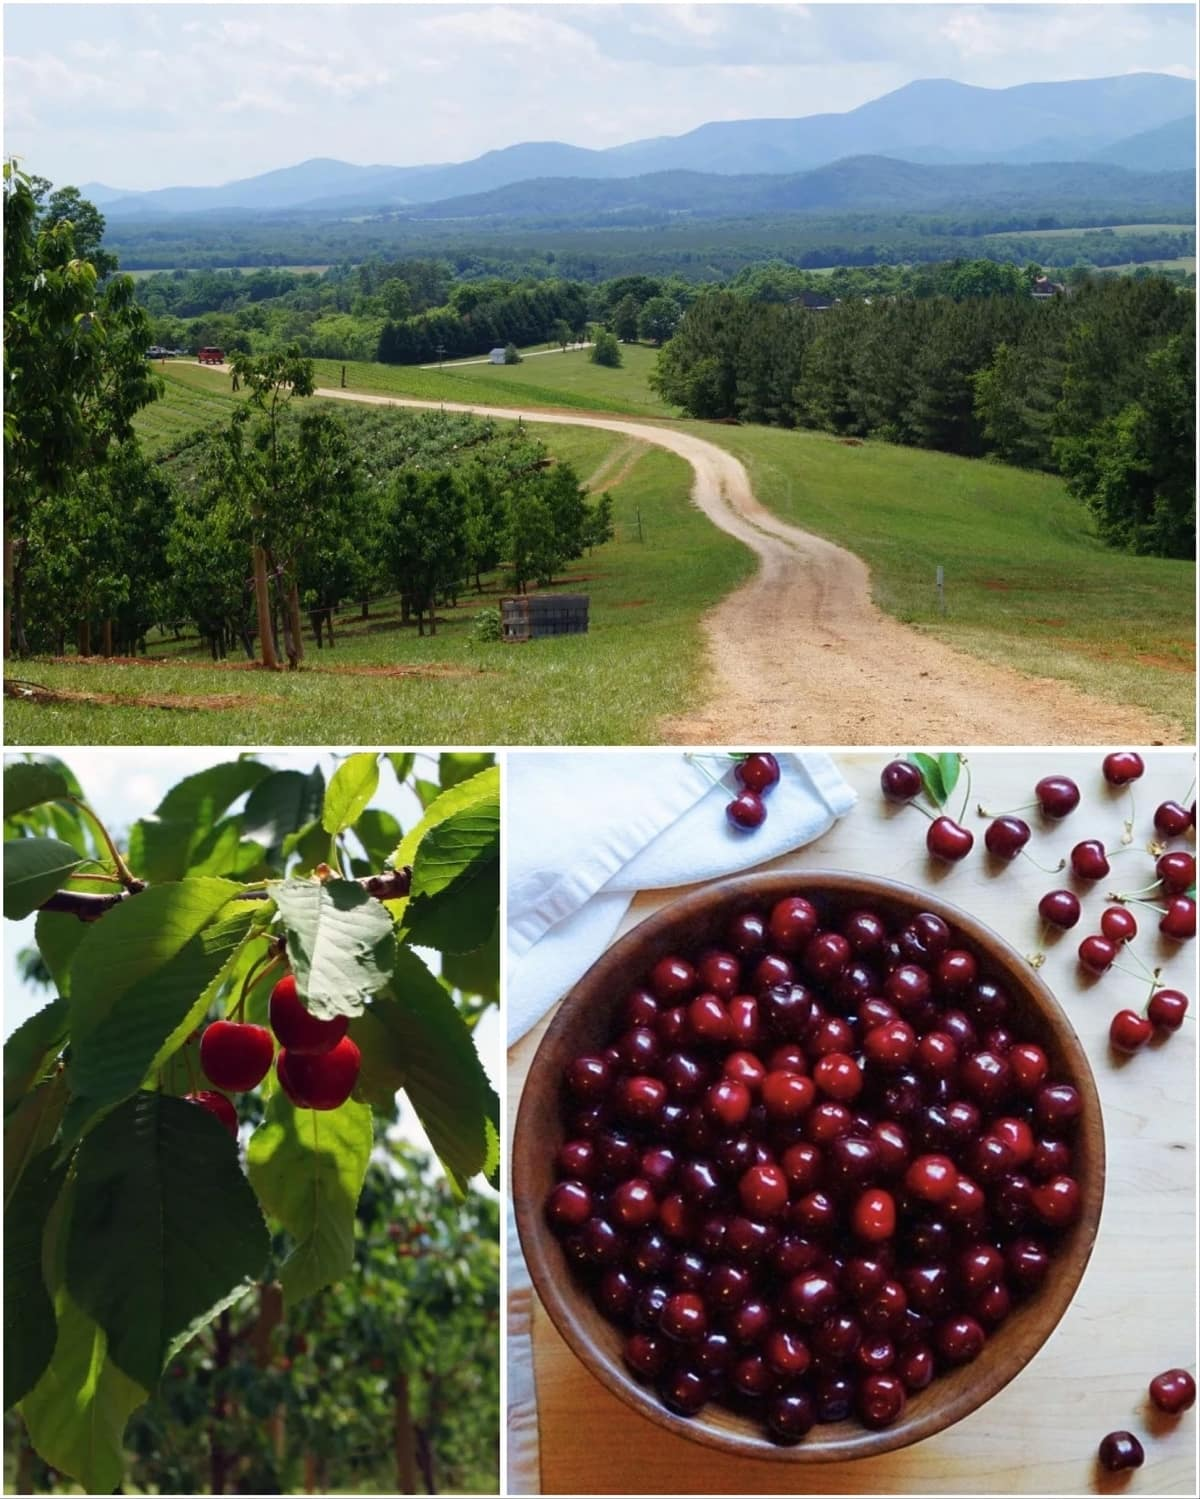 Collage of a photo of the farm with mountain views, close up of cherries on the tree, and a bowl of picked cherries.